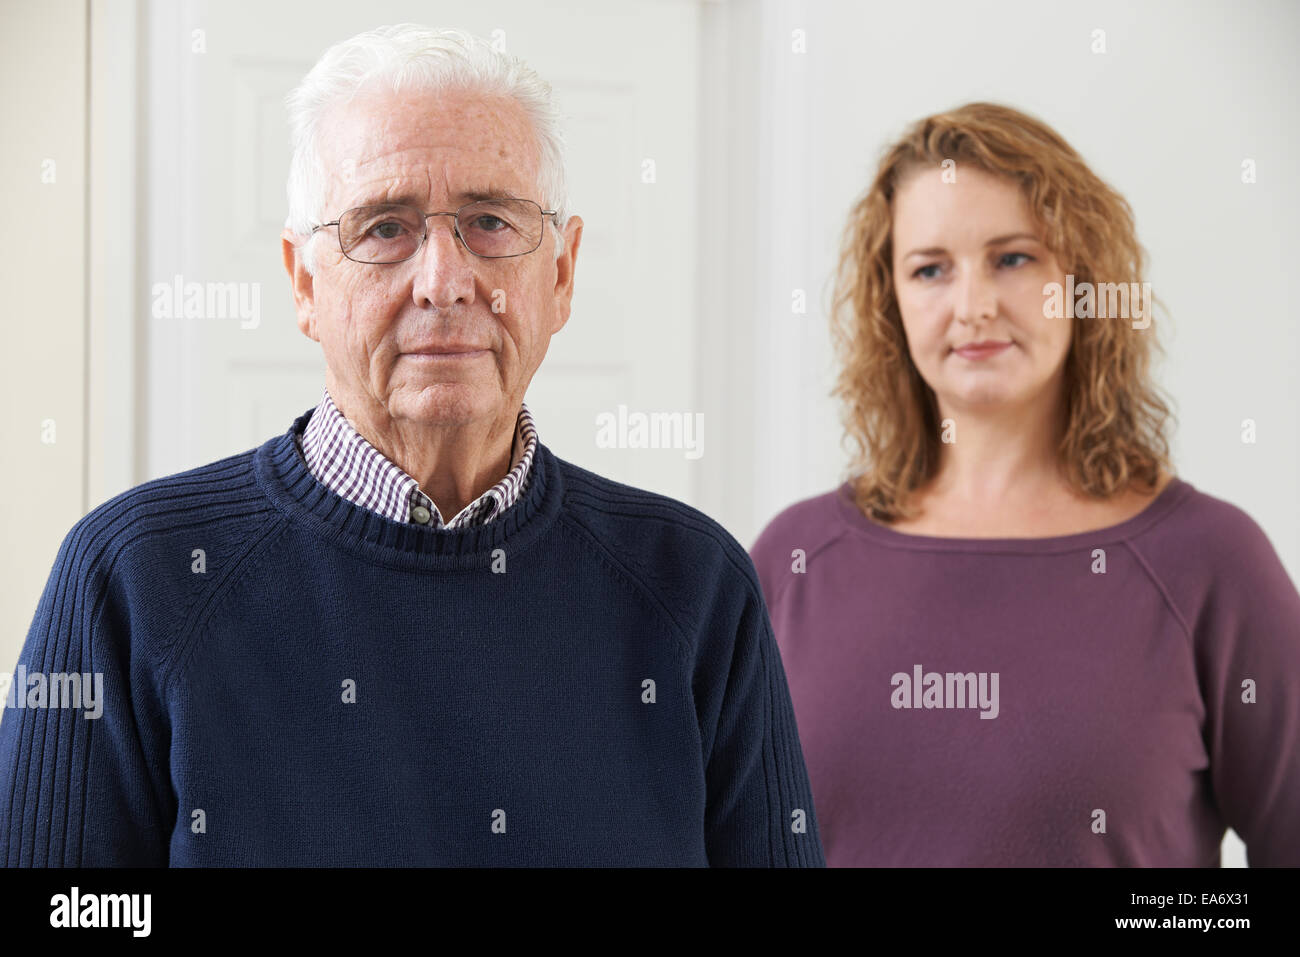 Serious Senior Man With Adult Daughter At Home - Stock Image